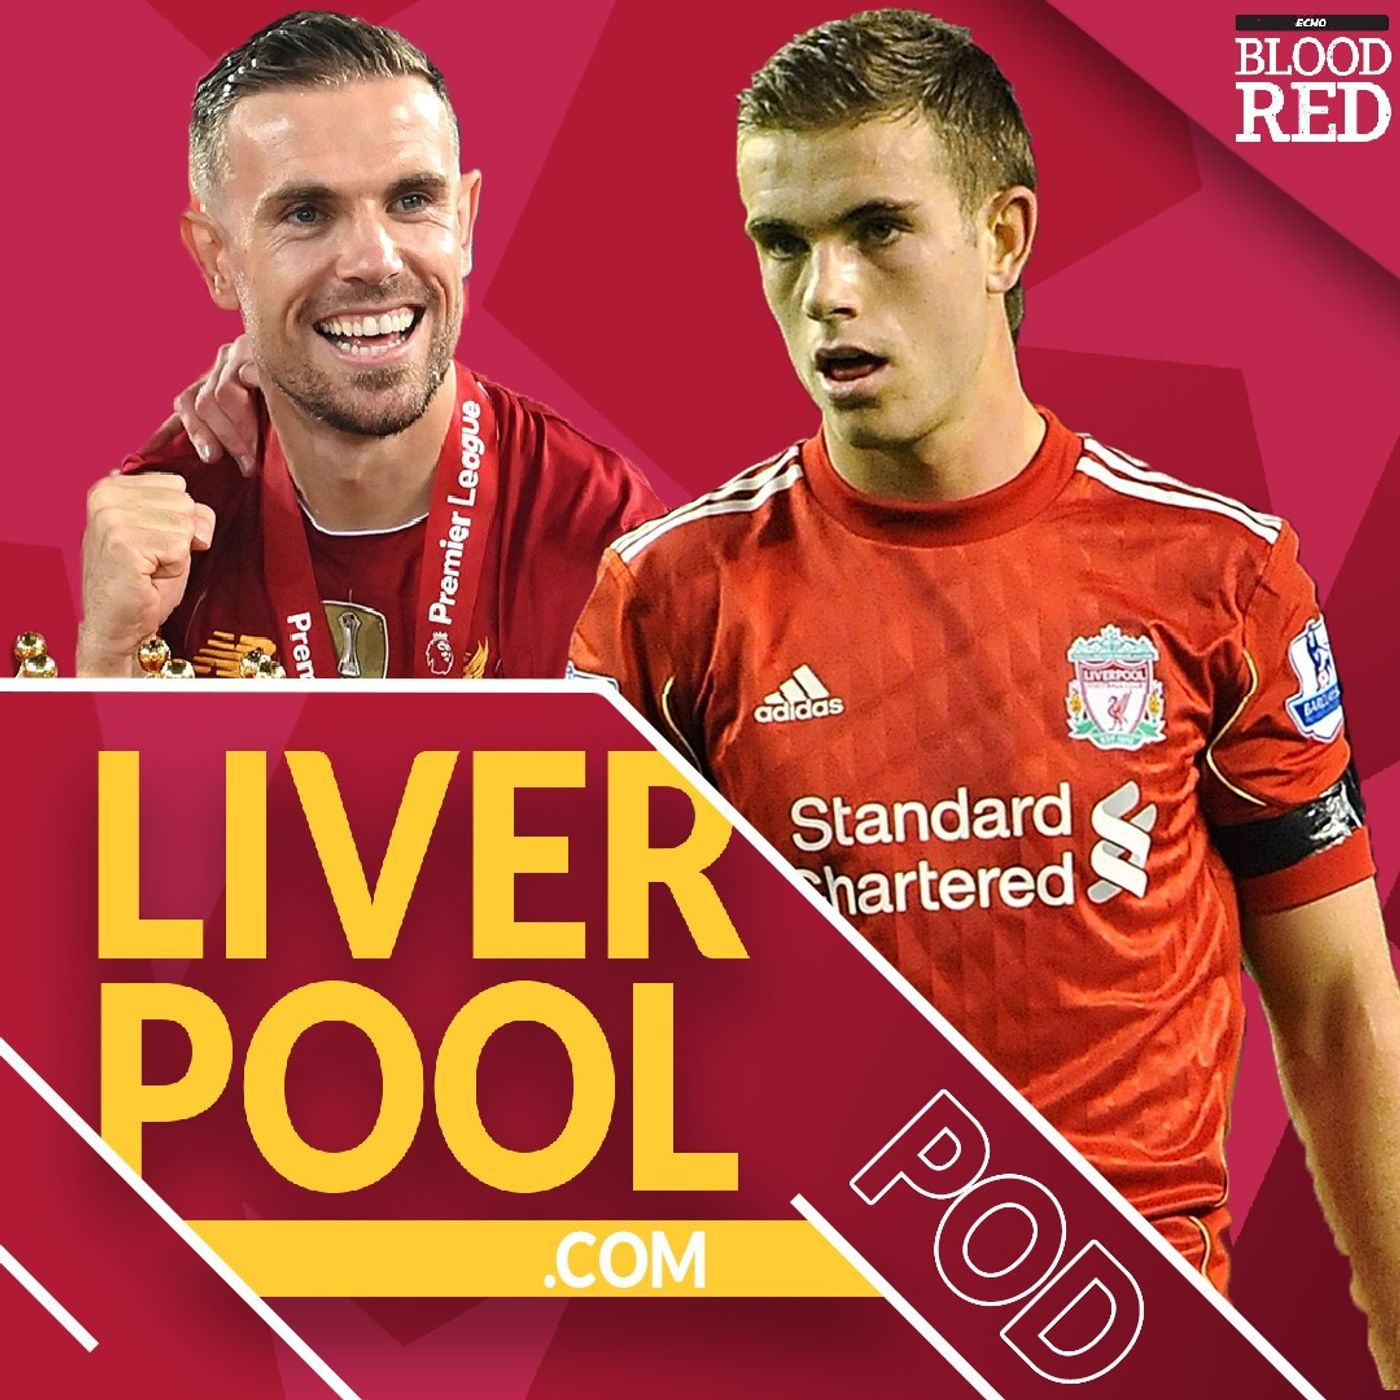 Liverpool.com podcast: Jordan Henderson at Liverpool   Early days to player and man he is now